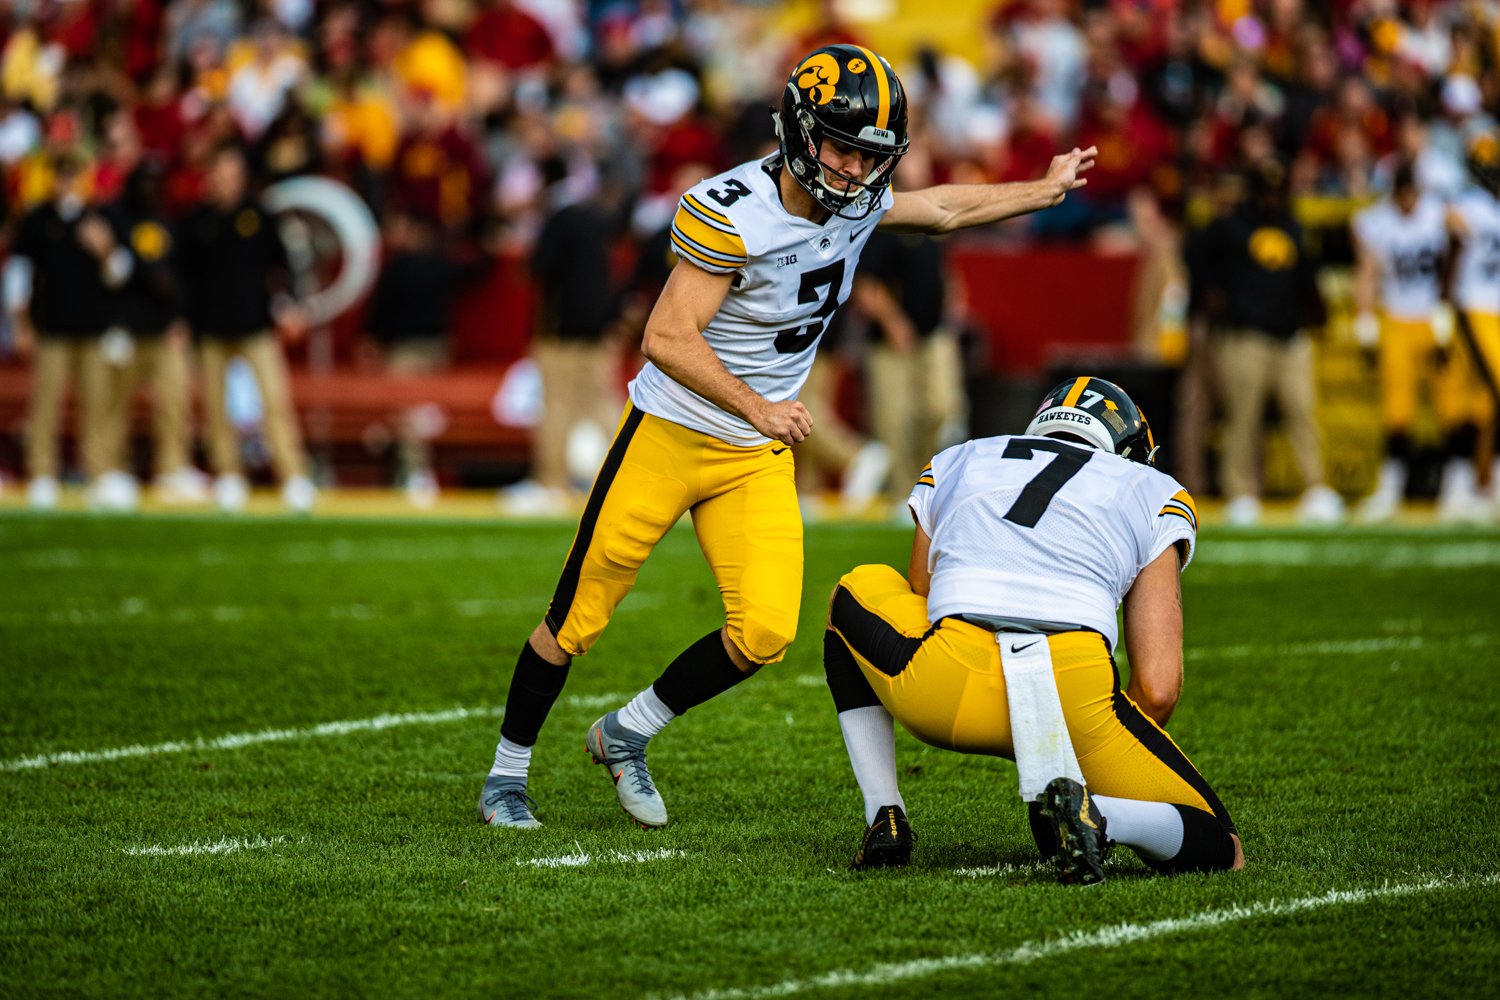 Iowa kicker Keith Duncan makes a practice kick during a football game between Iowa and Iowa State at Jack Trice Stadium in Ames on Saturday, September 14, 2019.